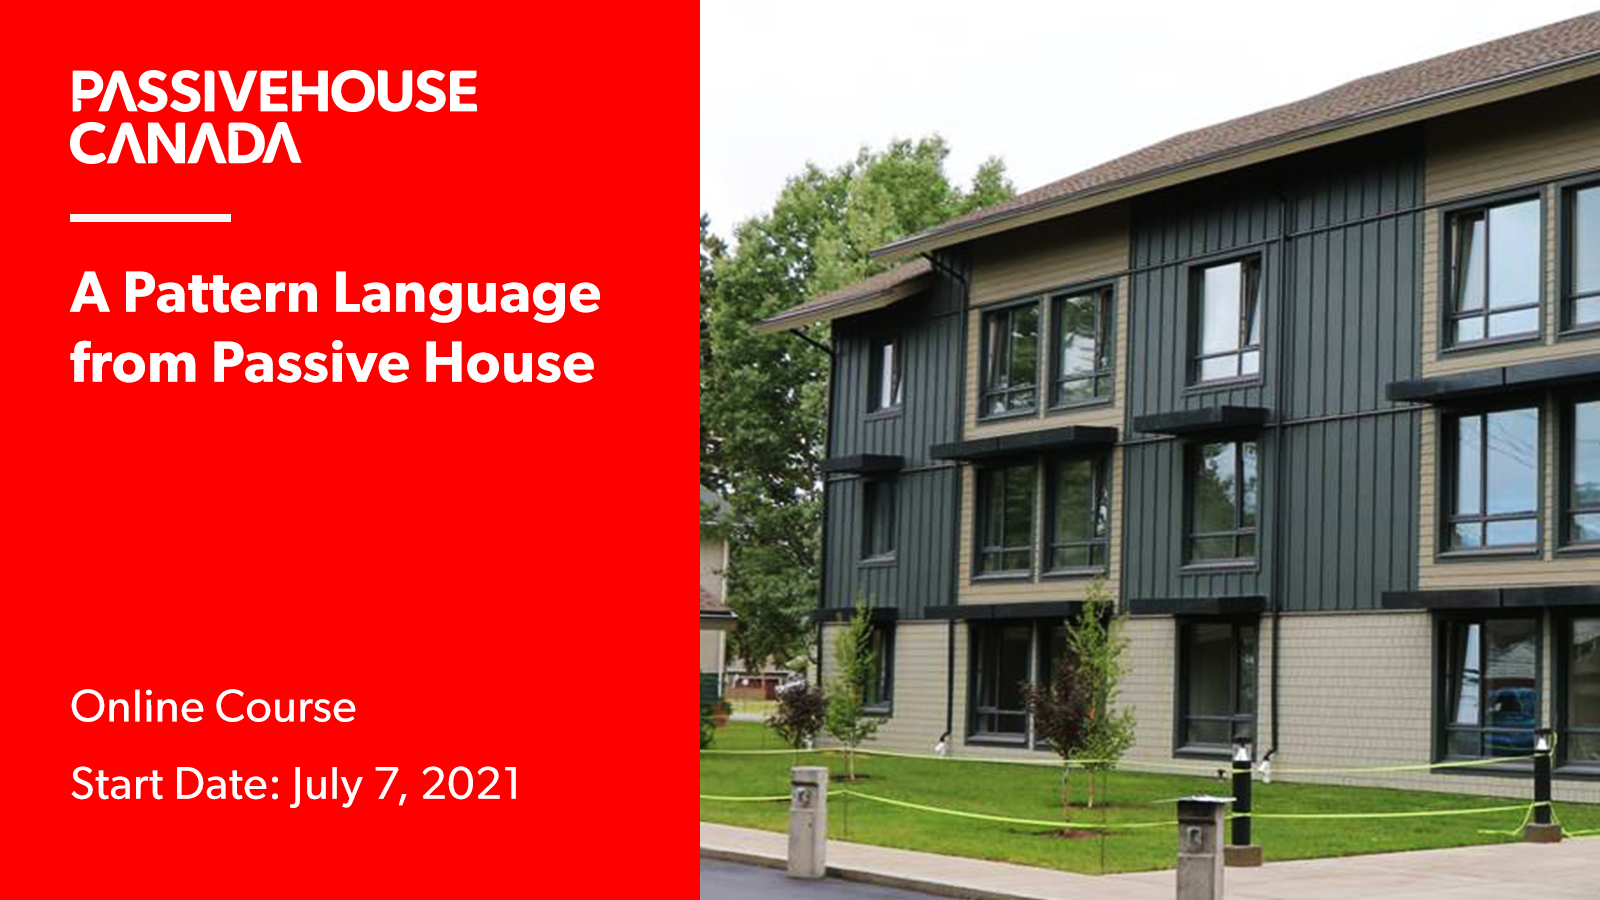 A Pattern Language from Passive House